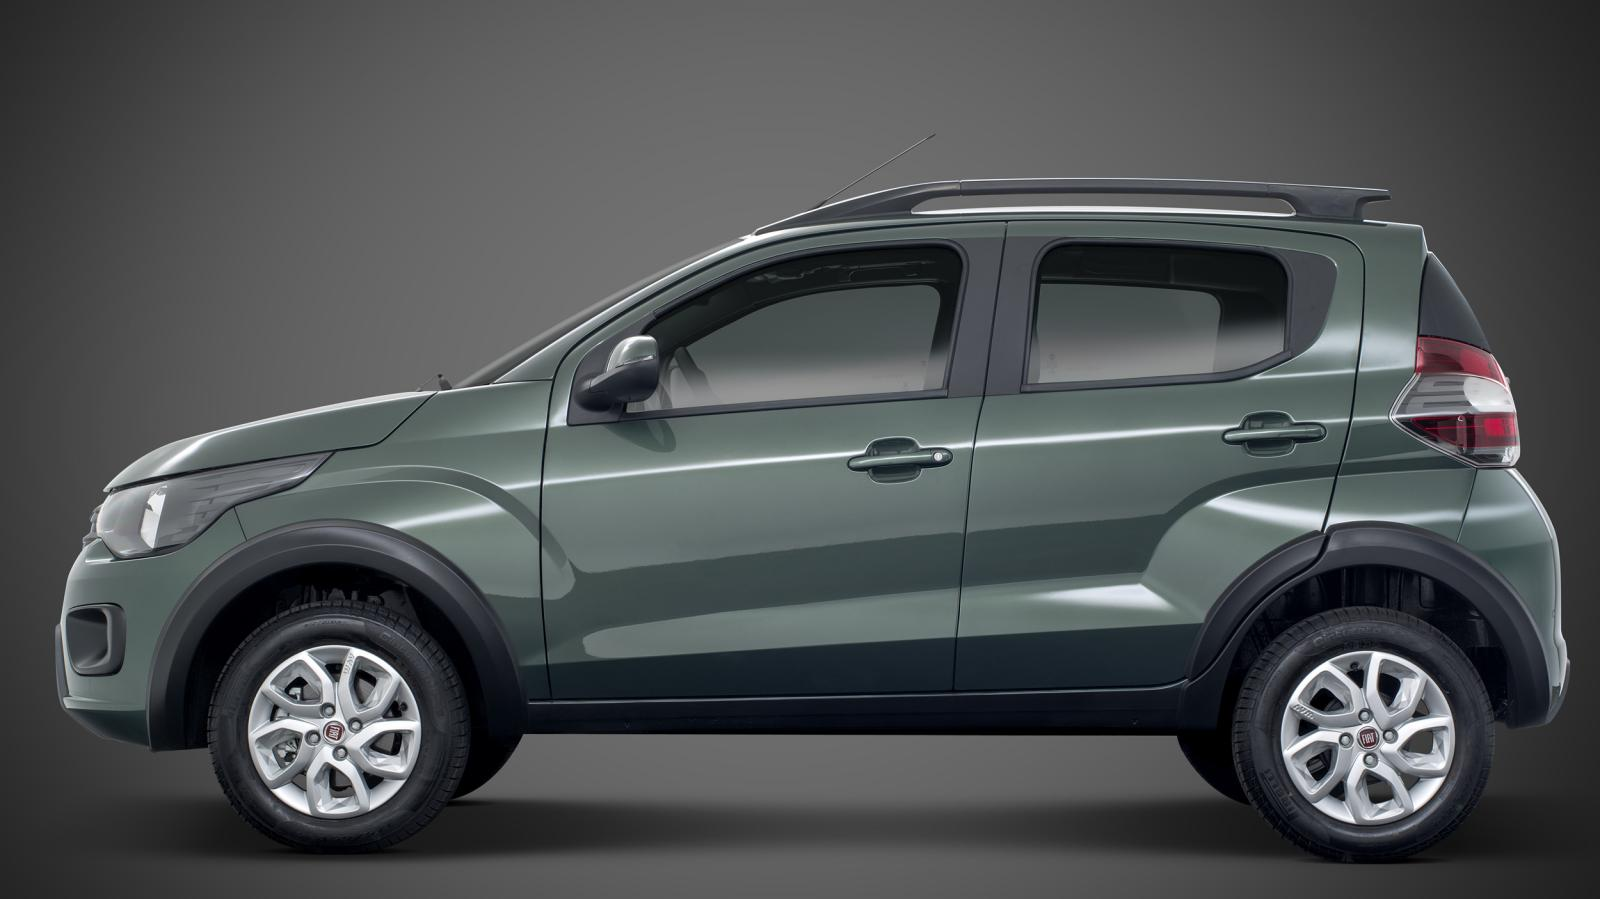 2016 Fiat Mobi Debuts in Brazil, Takes On the Renault Kwid